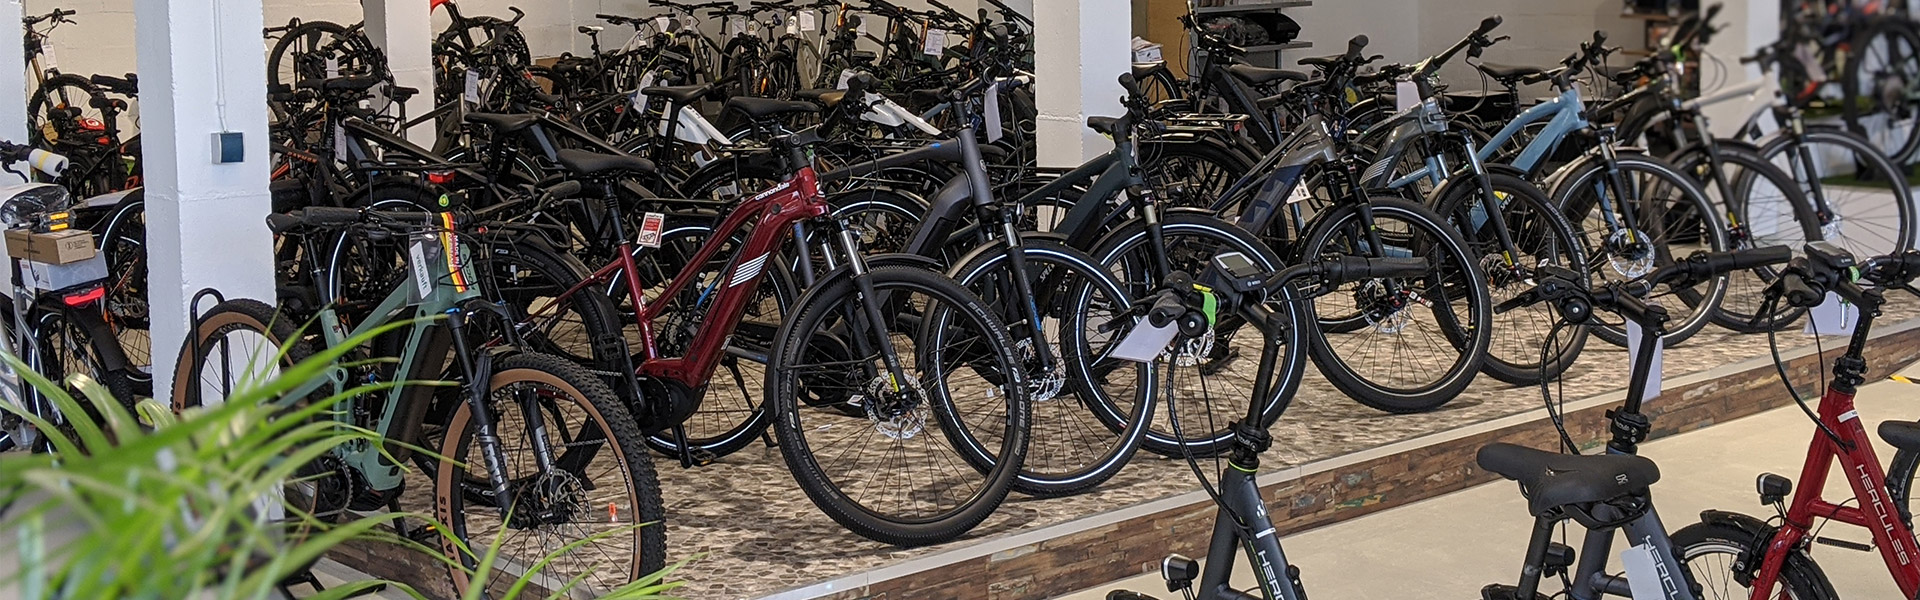 Der Shop der e-motion e-Bike Welt Bad Kreuznach